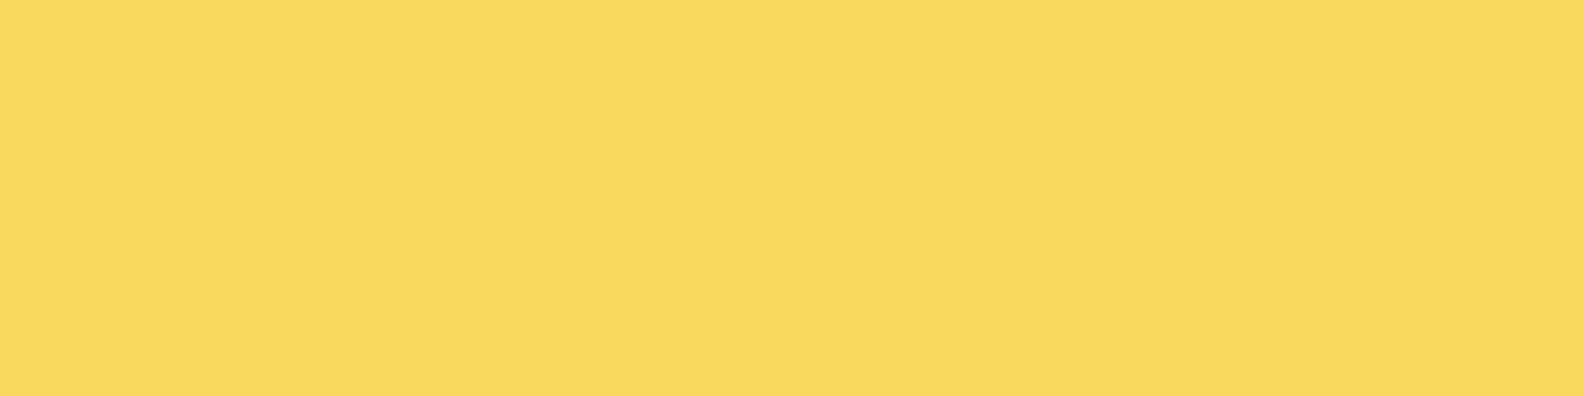 1584x396 Royal Yellow Solid Color Background